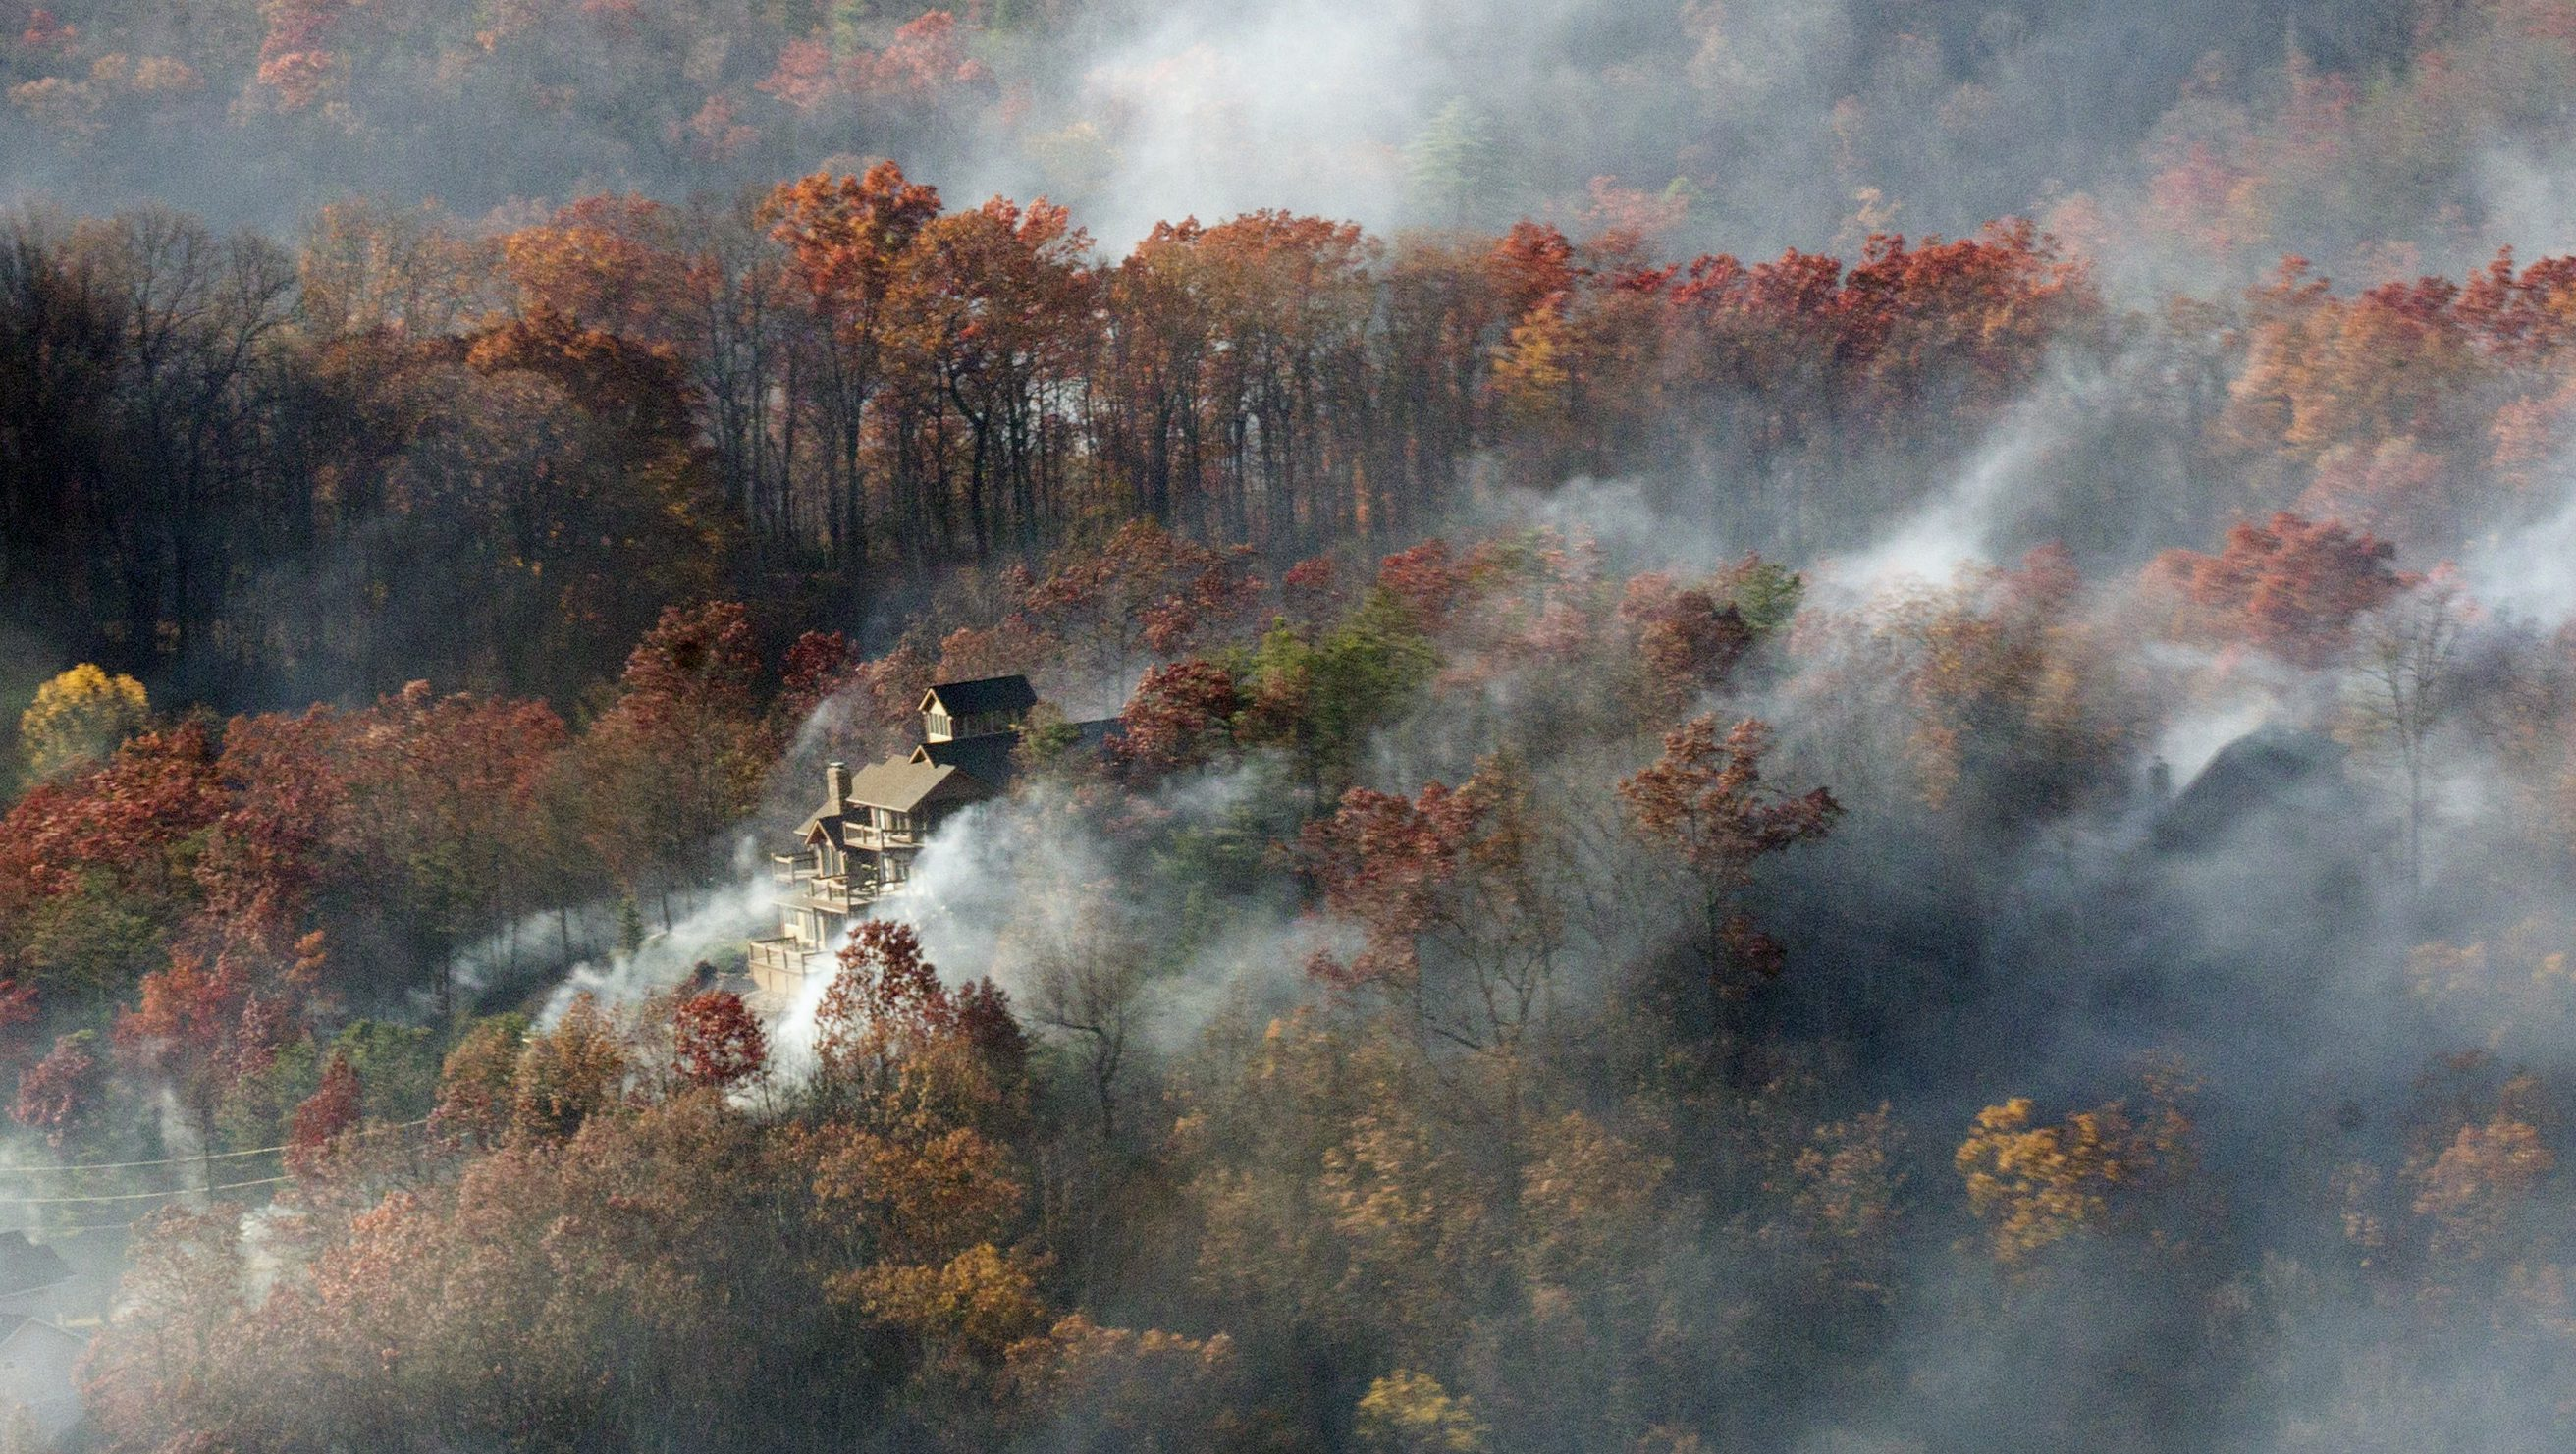 Smoke from a deadly wildfire engulfs a home near Gatlinburg, Tennessee.